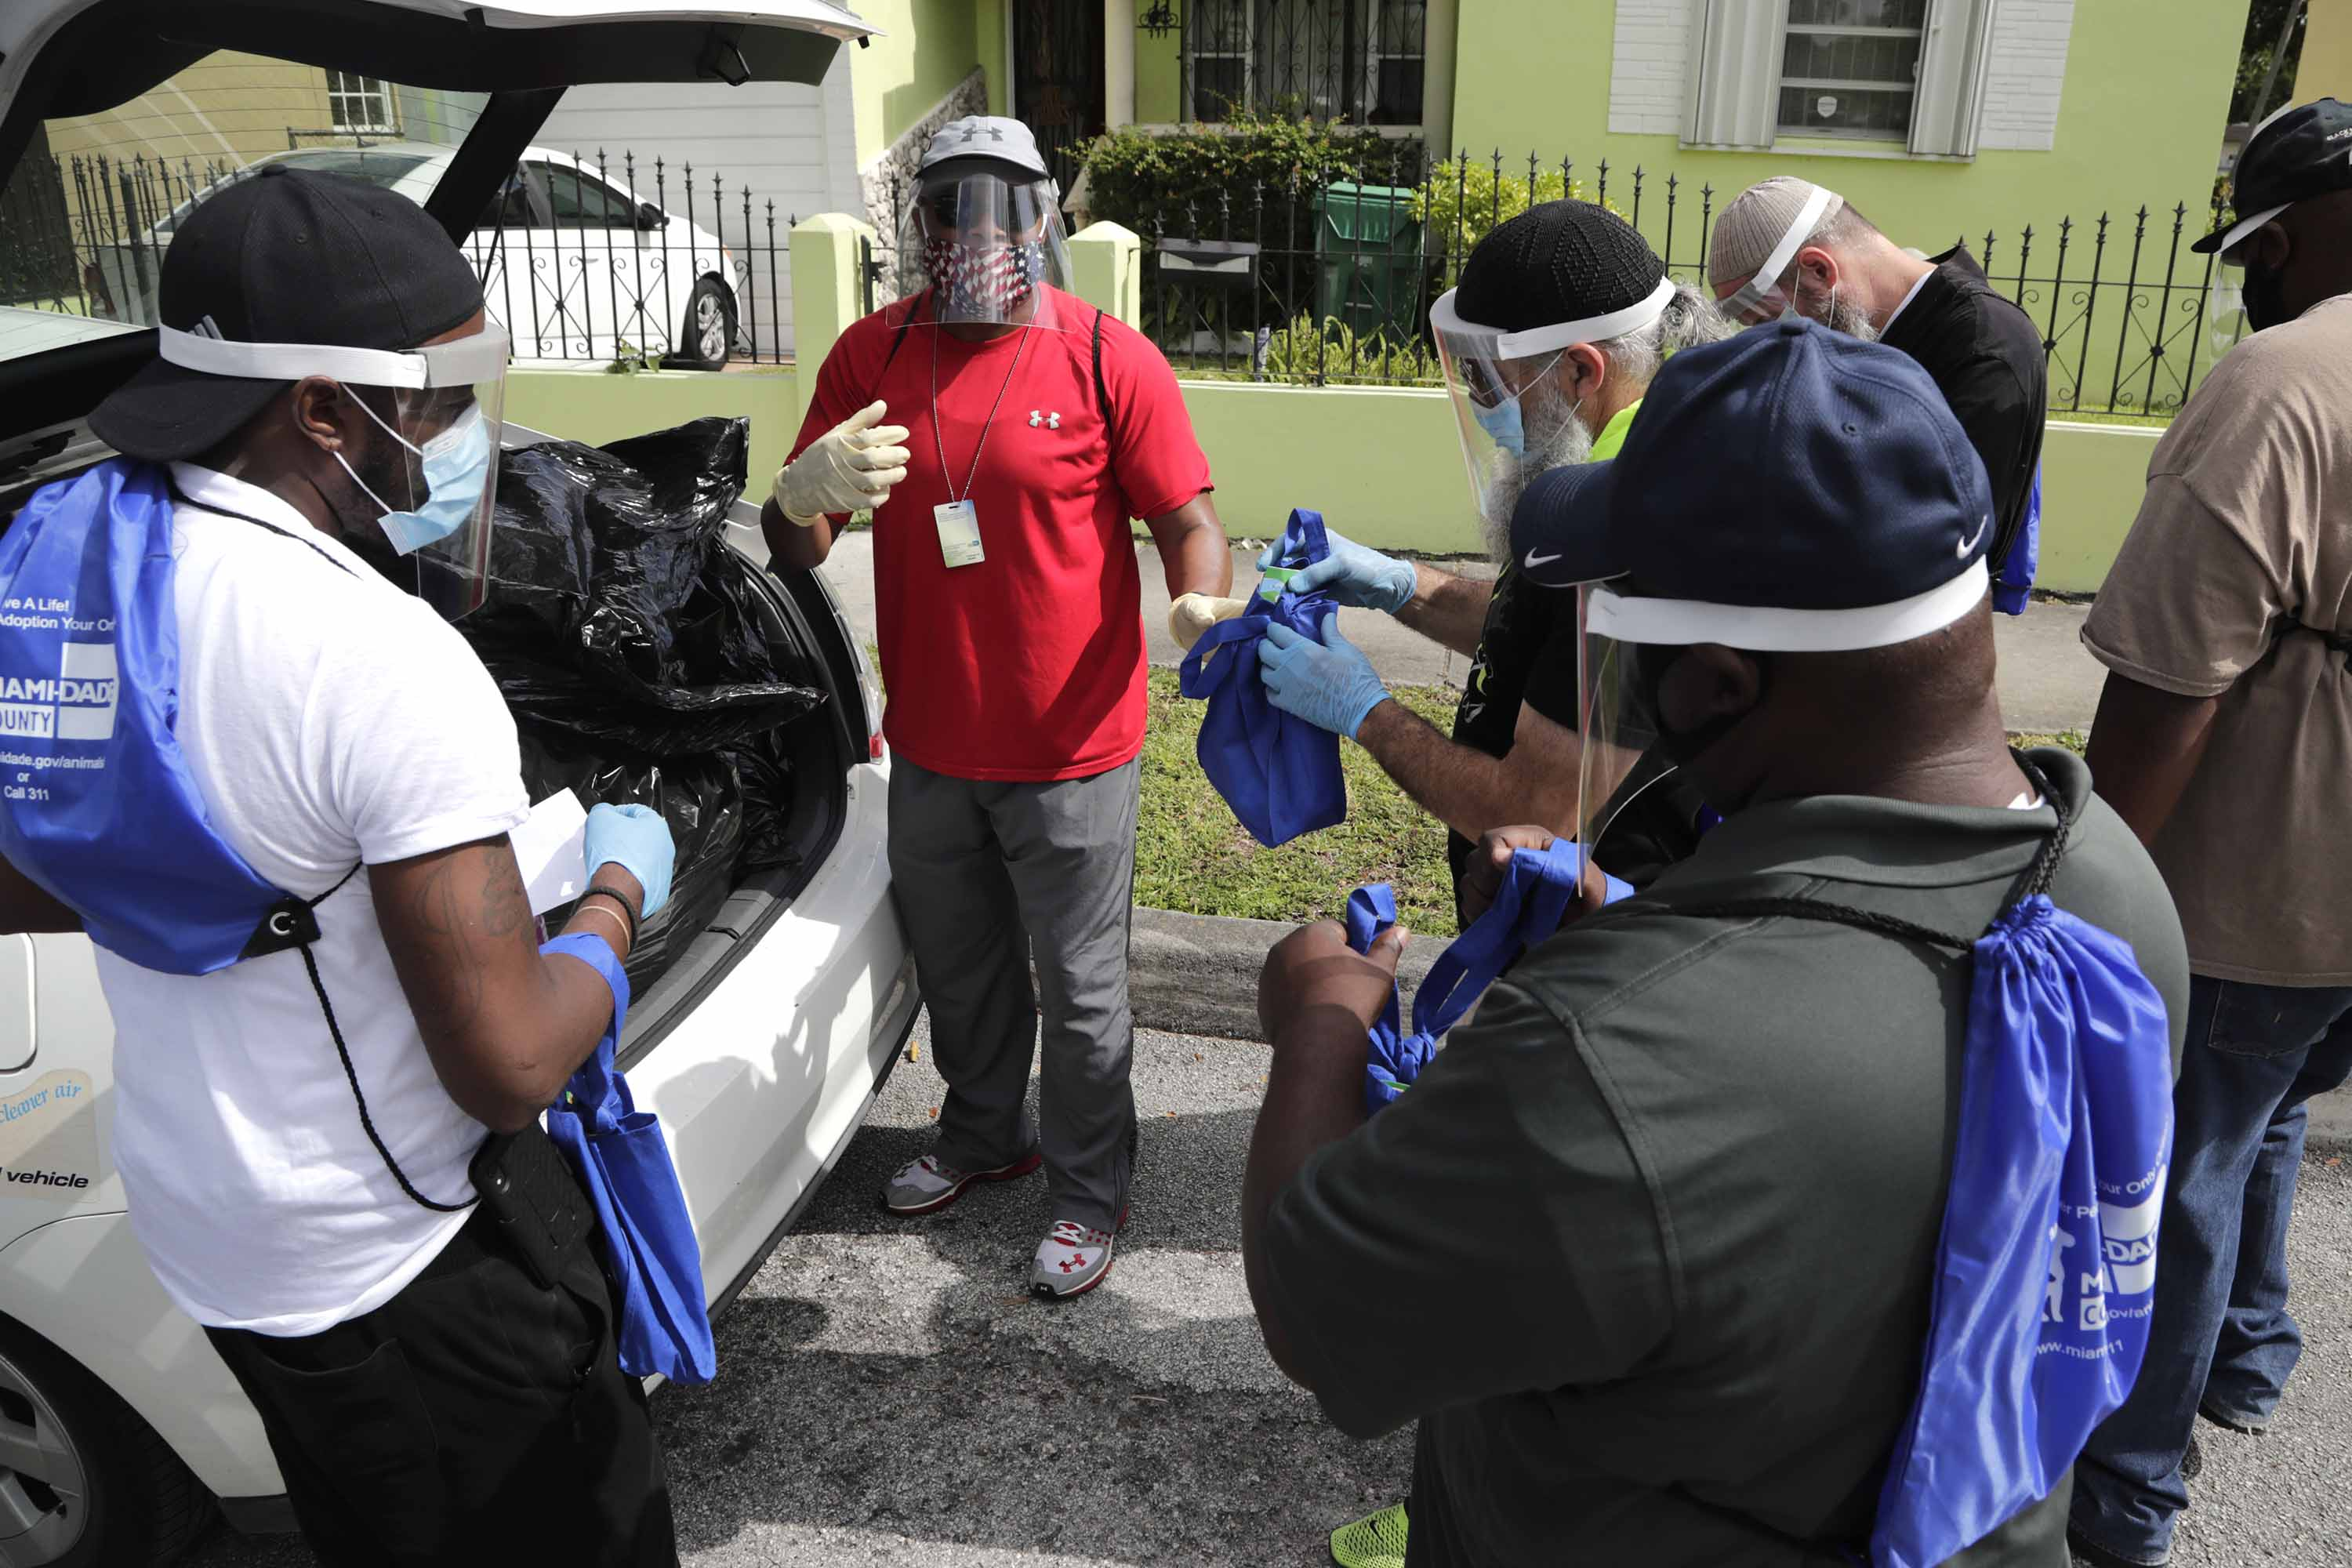 Morris Copeland of the Strategic Urban Response to Guideline Education (SURGE) group, center, passes out coronavirus prevention kits to team members, for distribution to residents living in COVID-19 hotspots in Miami, on July 1.